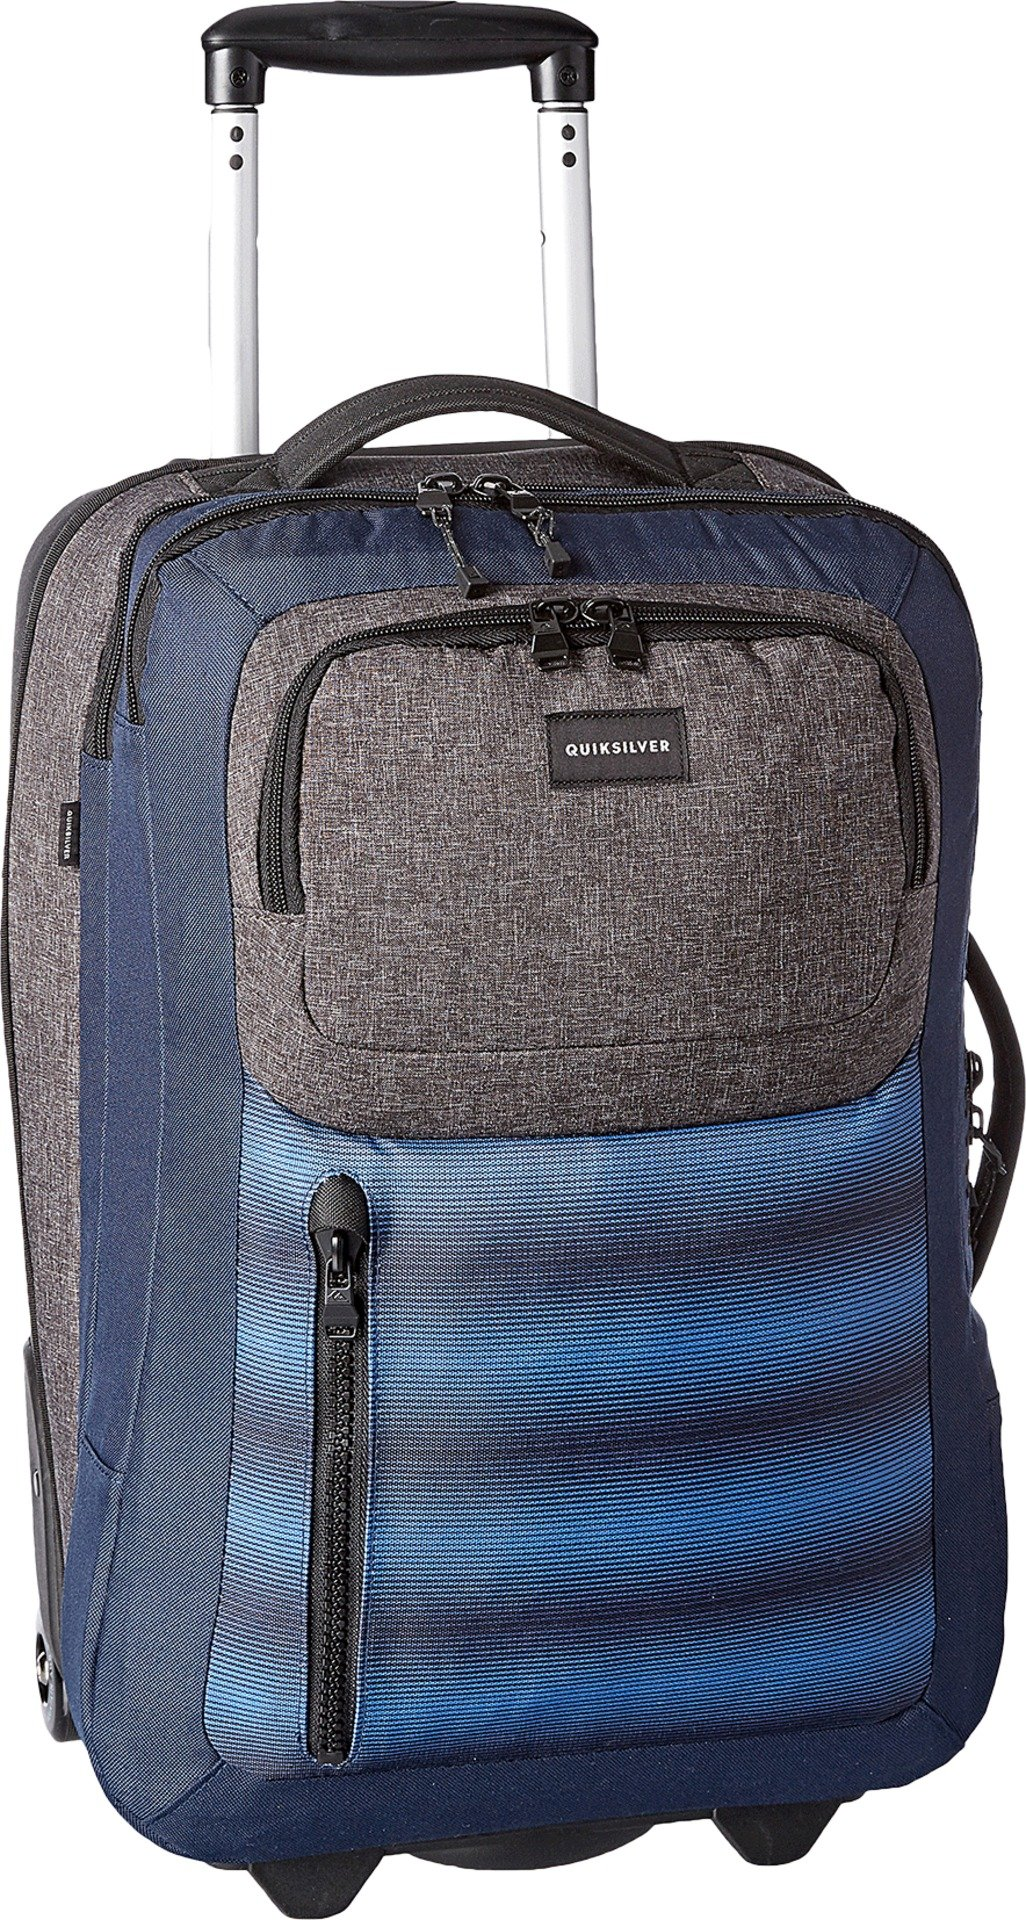 Quiksilver Young Men's Horizon Luggage Roller Bag Accessory, navy blazer, One Size